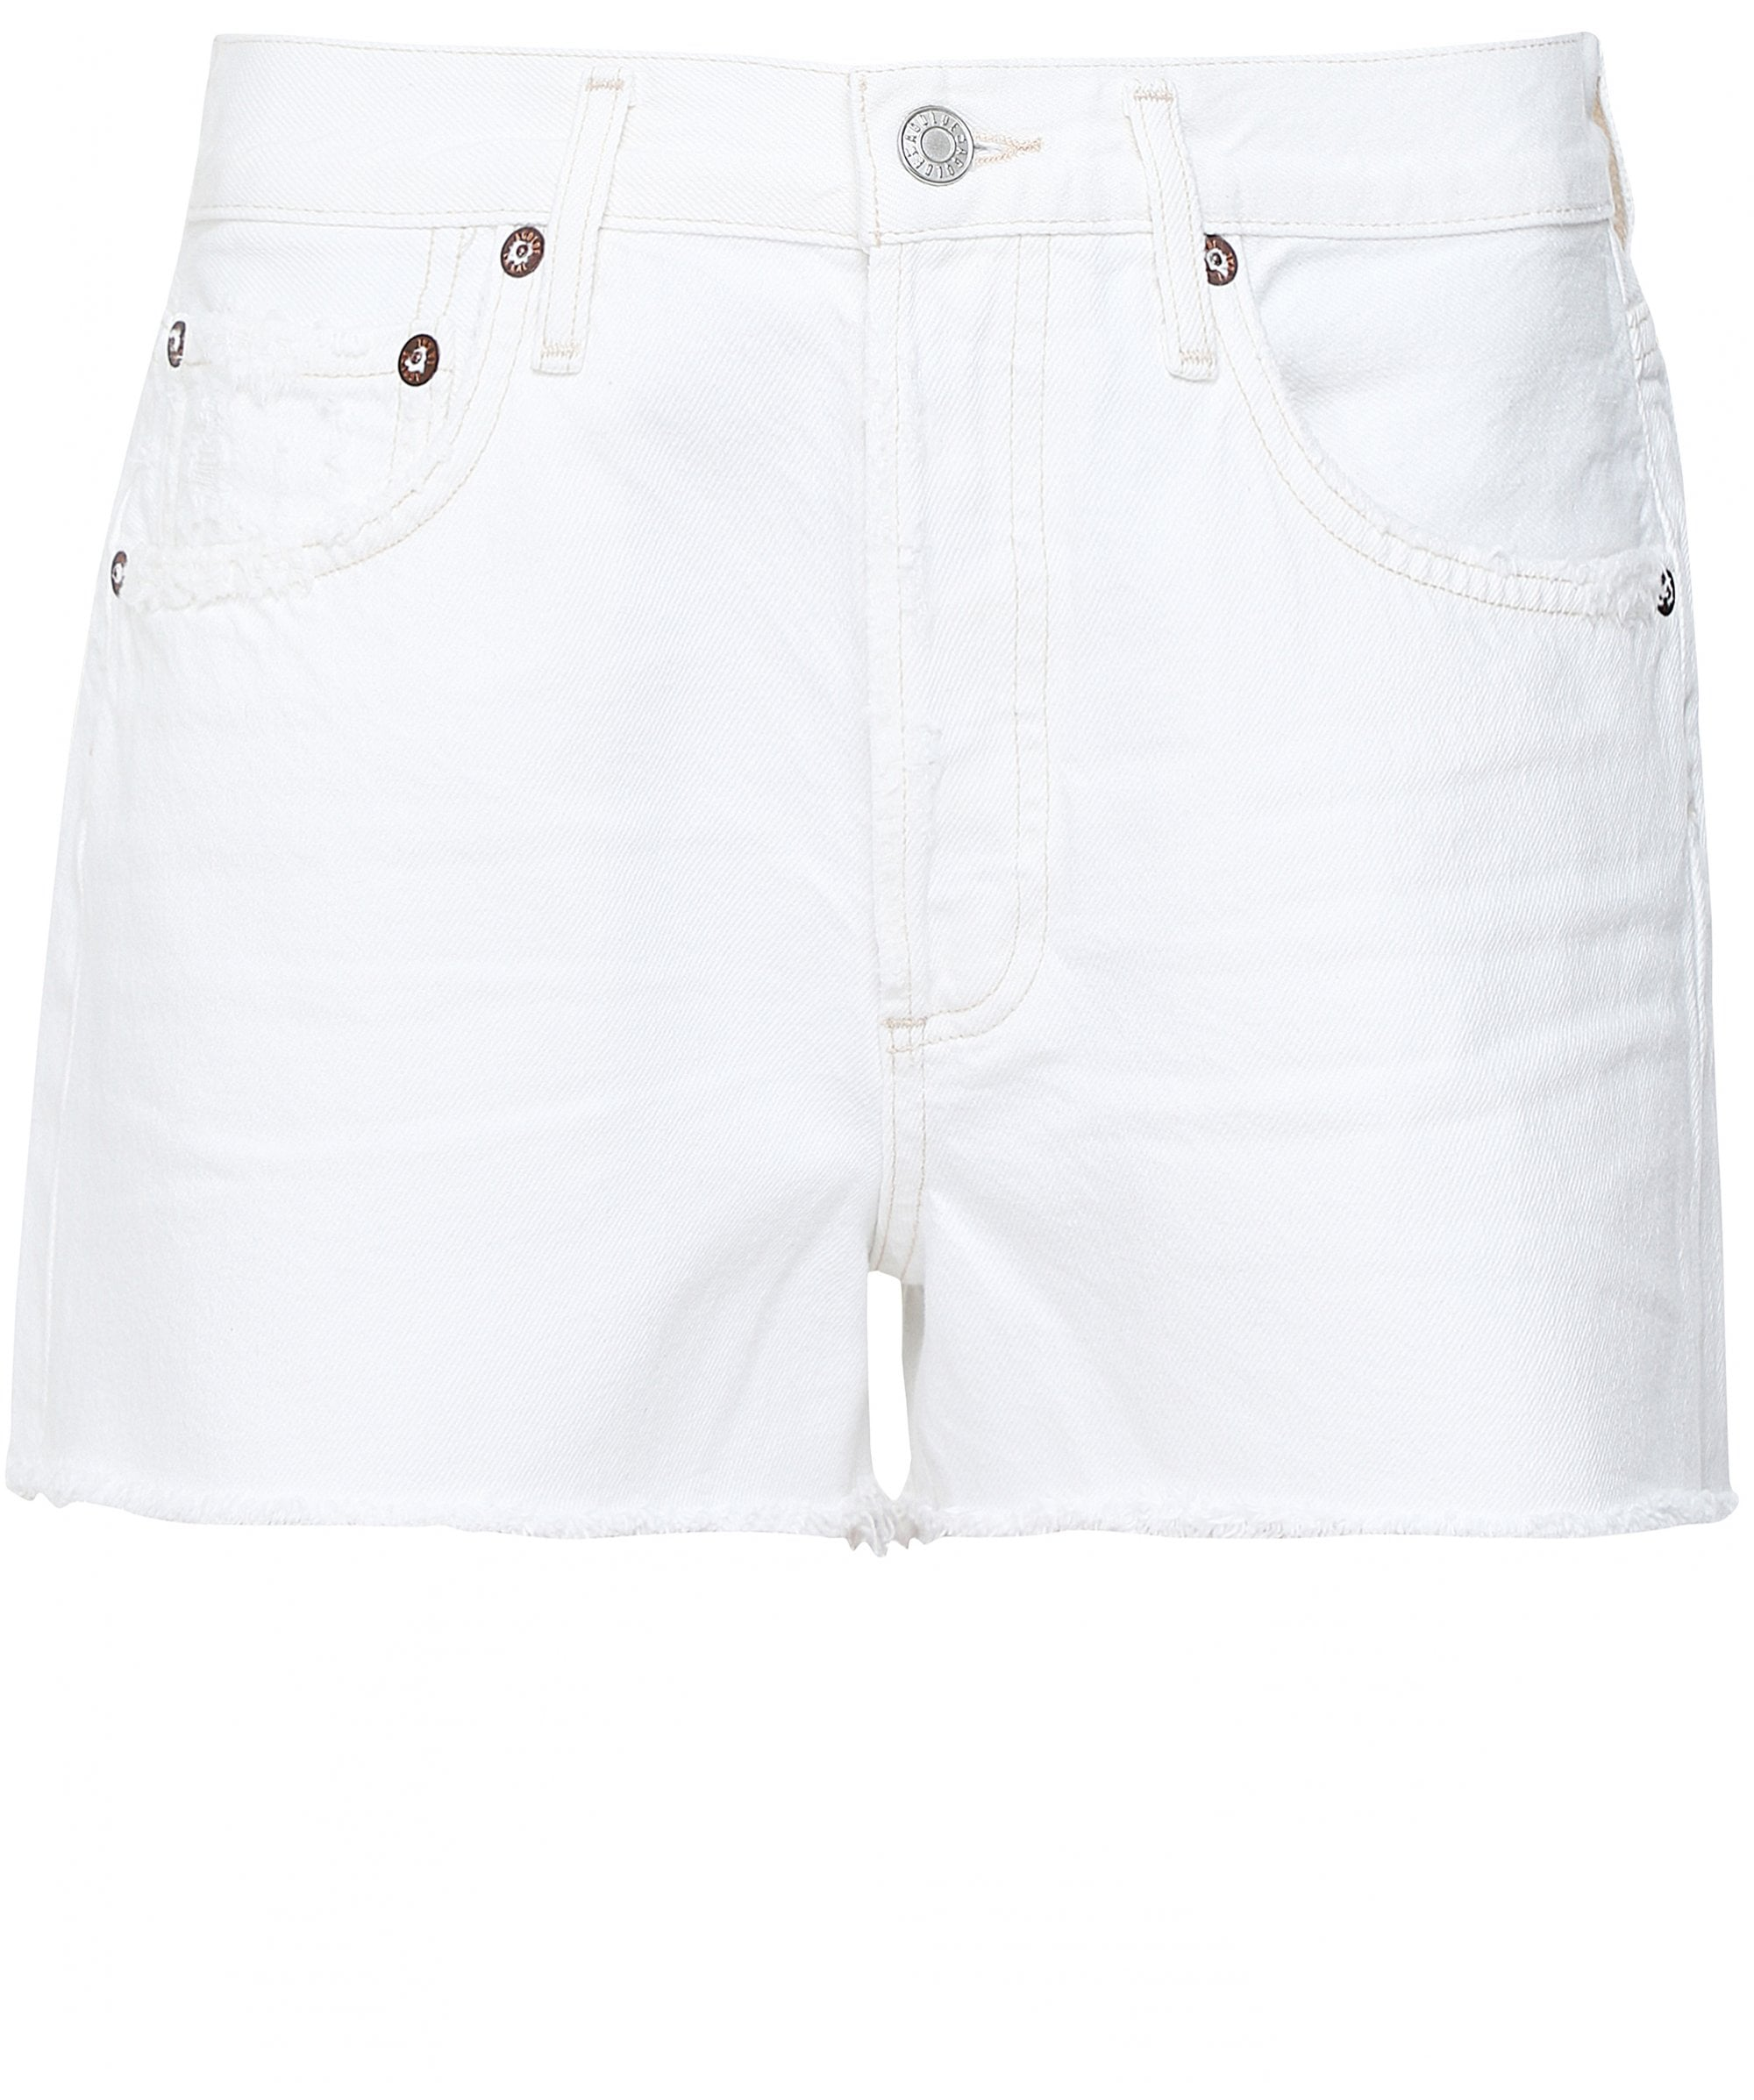 This is an image of a pair of white denim shorts for women